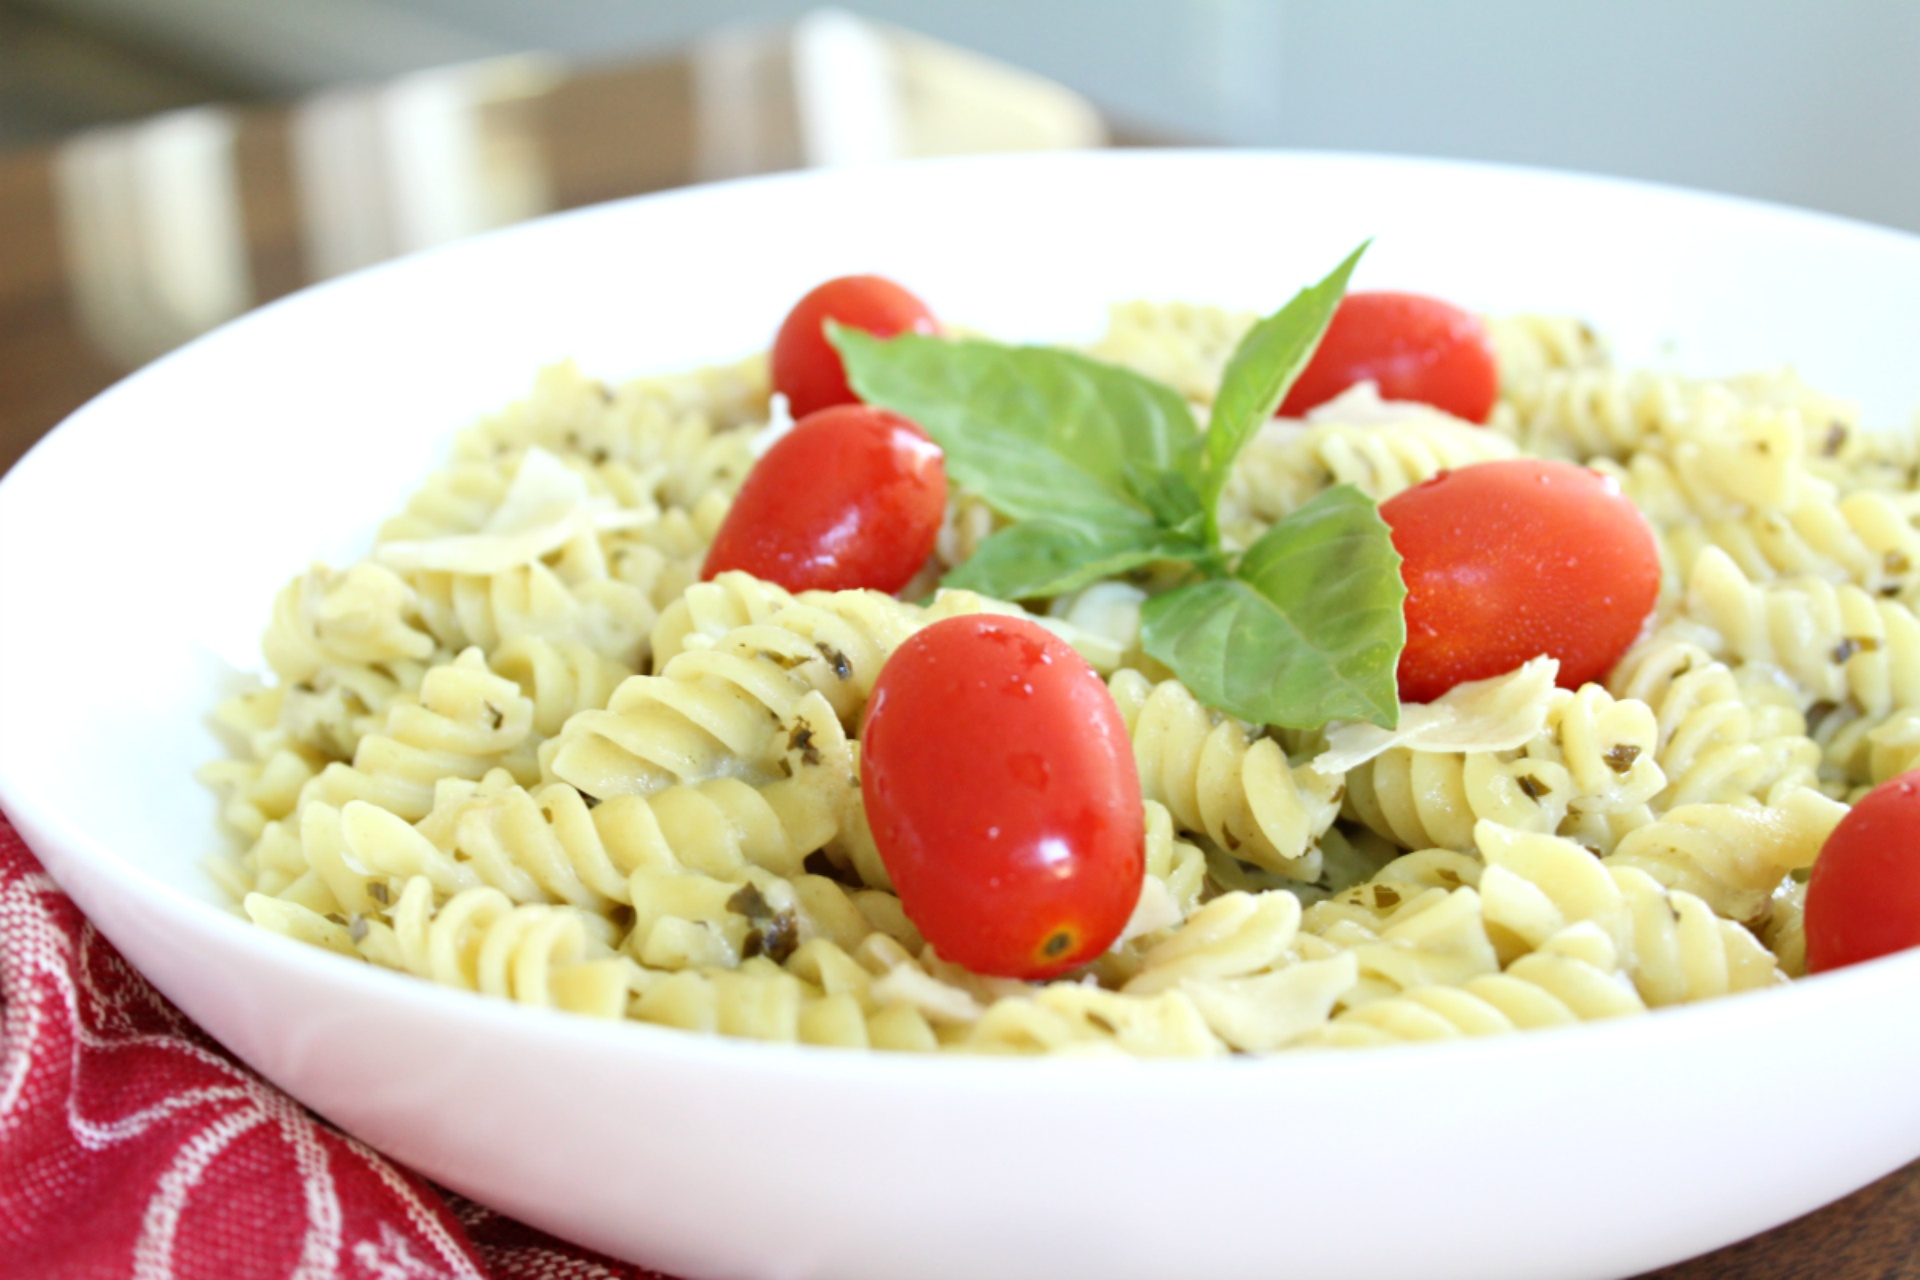 Pesto Alfredo Pasta with tomatoes